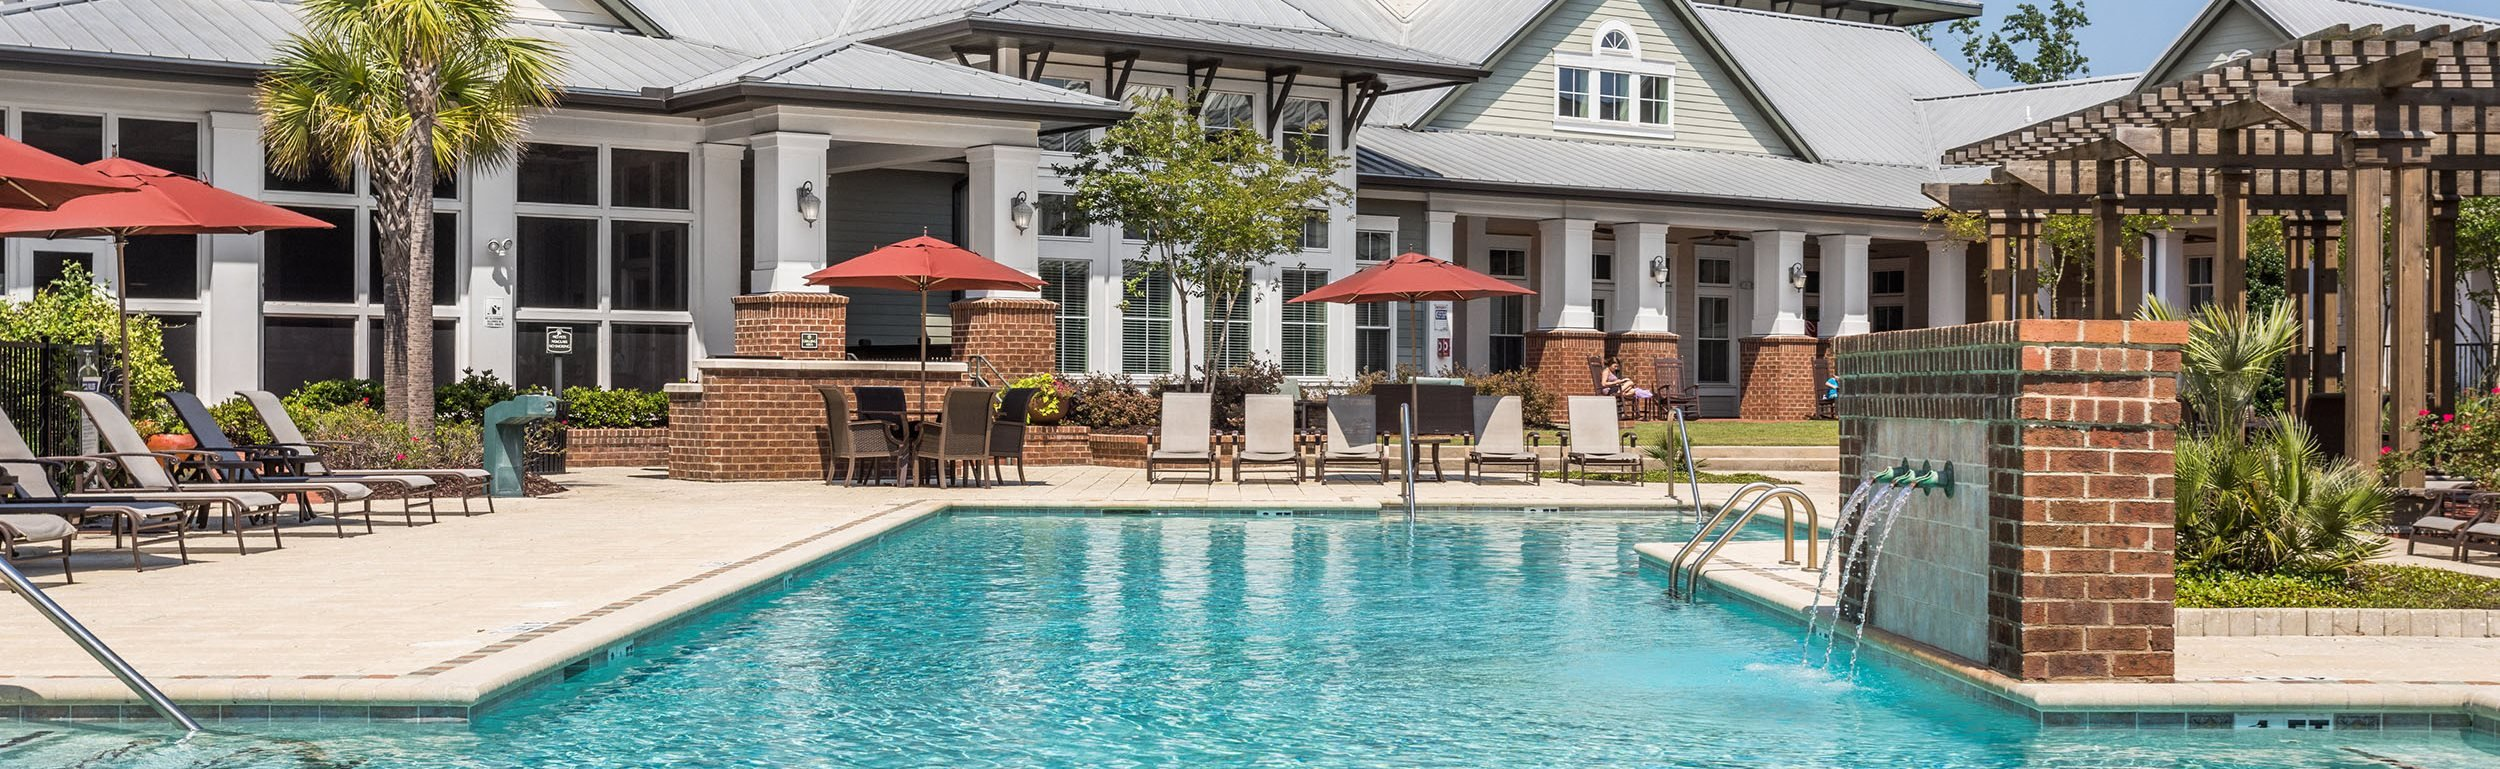 Poolside Sundeck and Clubhouse - Talison Row Apartments